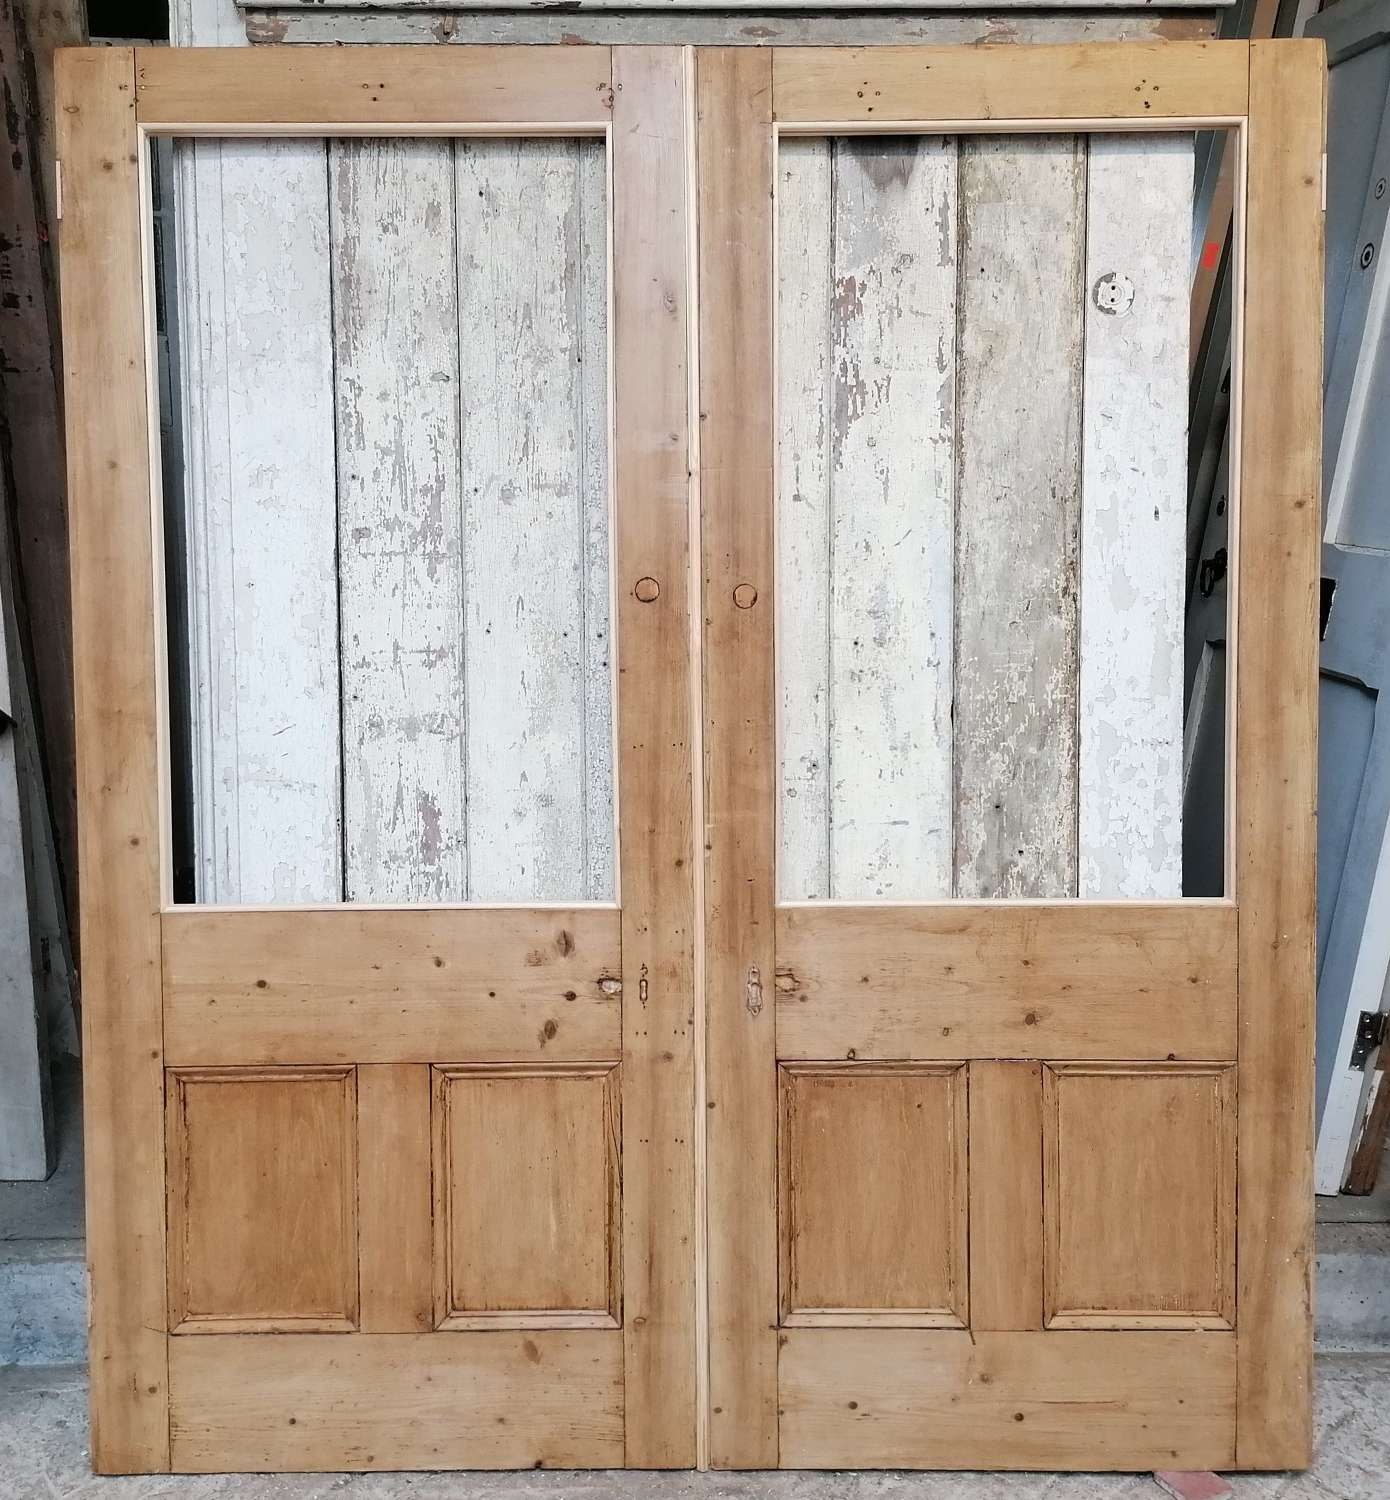 DP0329 A PAIR OF VICTORIAN INTERNAL STRIPPED PINE DOORS FOR GLAZING